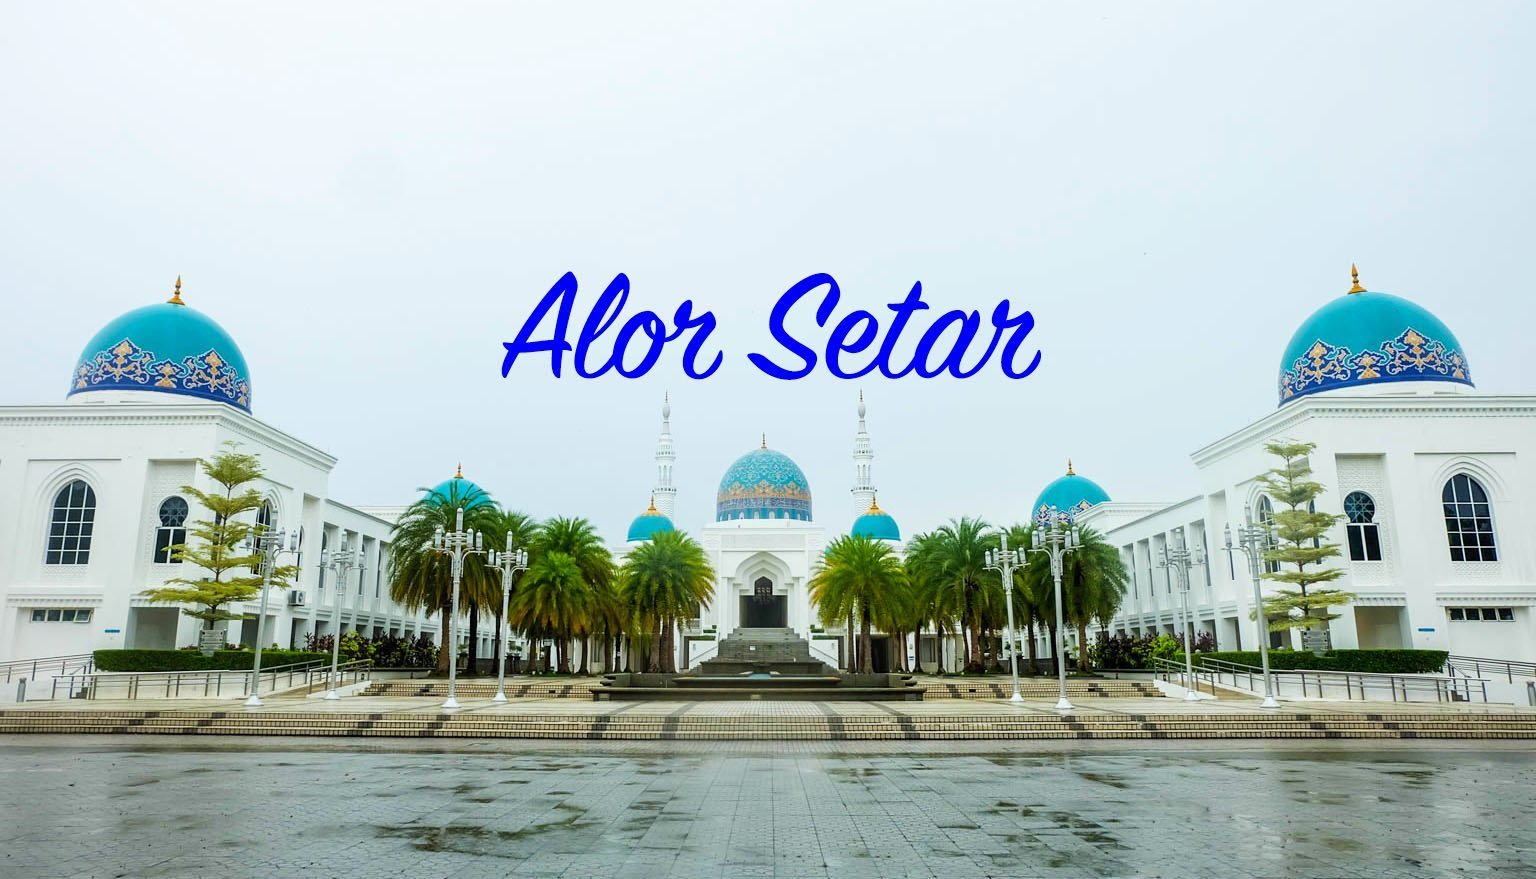 Alor Setar Travel Guide Blog: Tourist Attractions + Itinerary